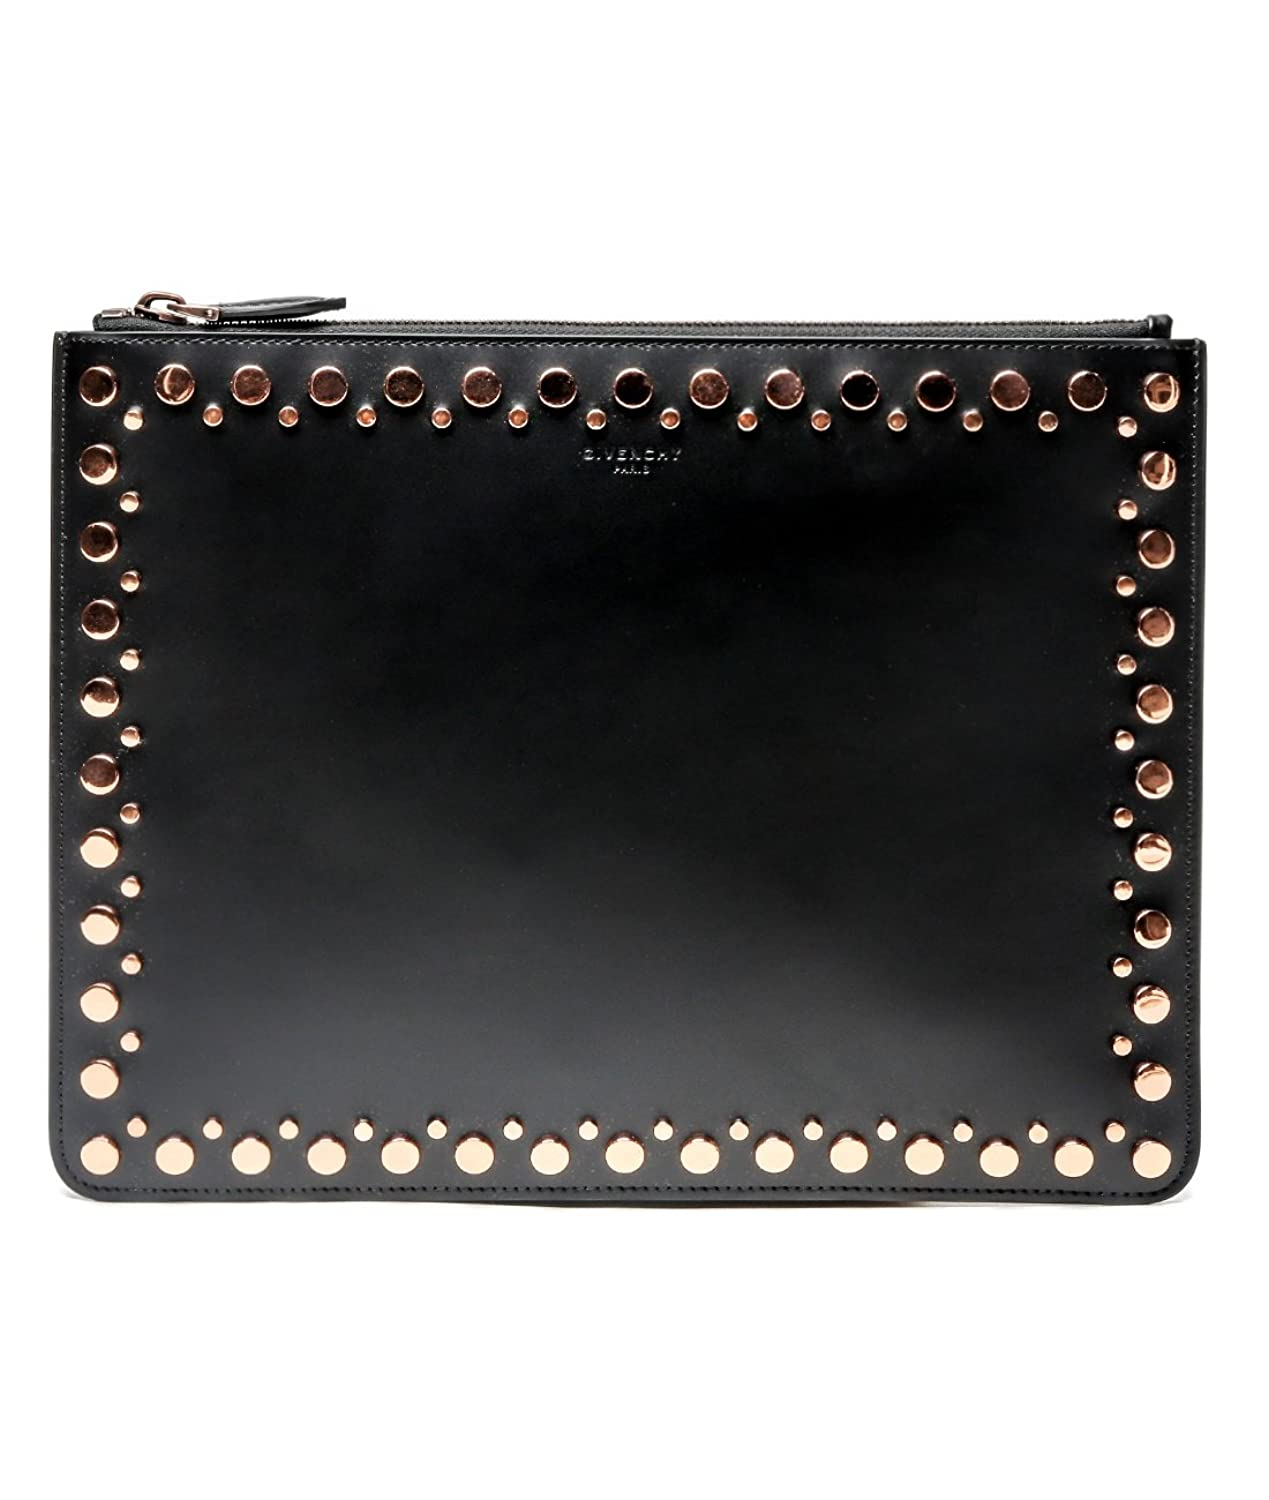 Wiberlux Givenchy Women's Studded Zip-Top Real Leather Clutch One Size Black